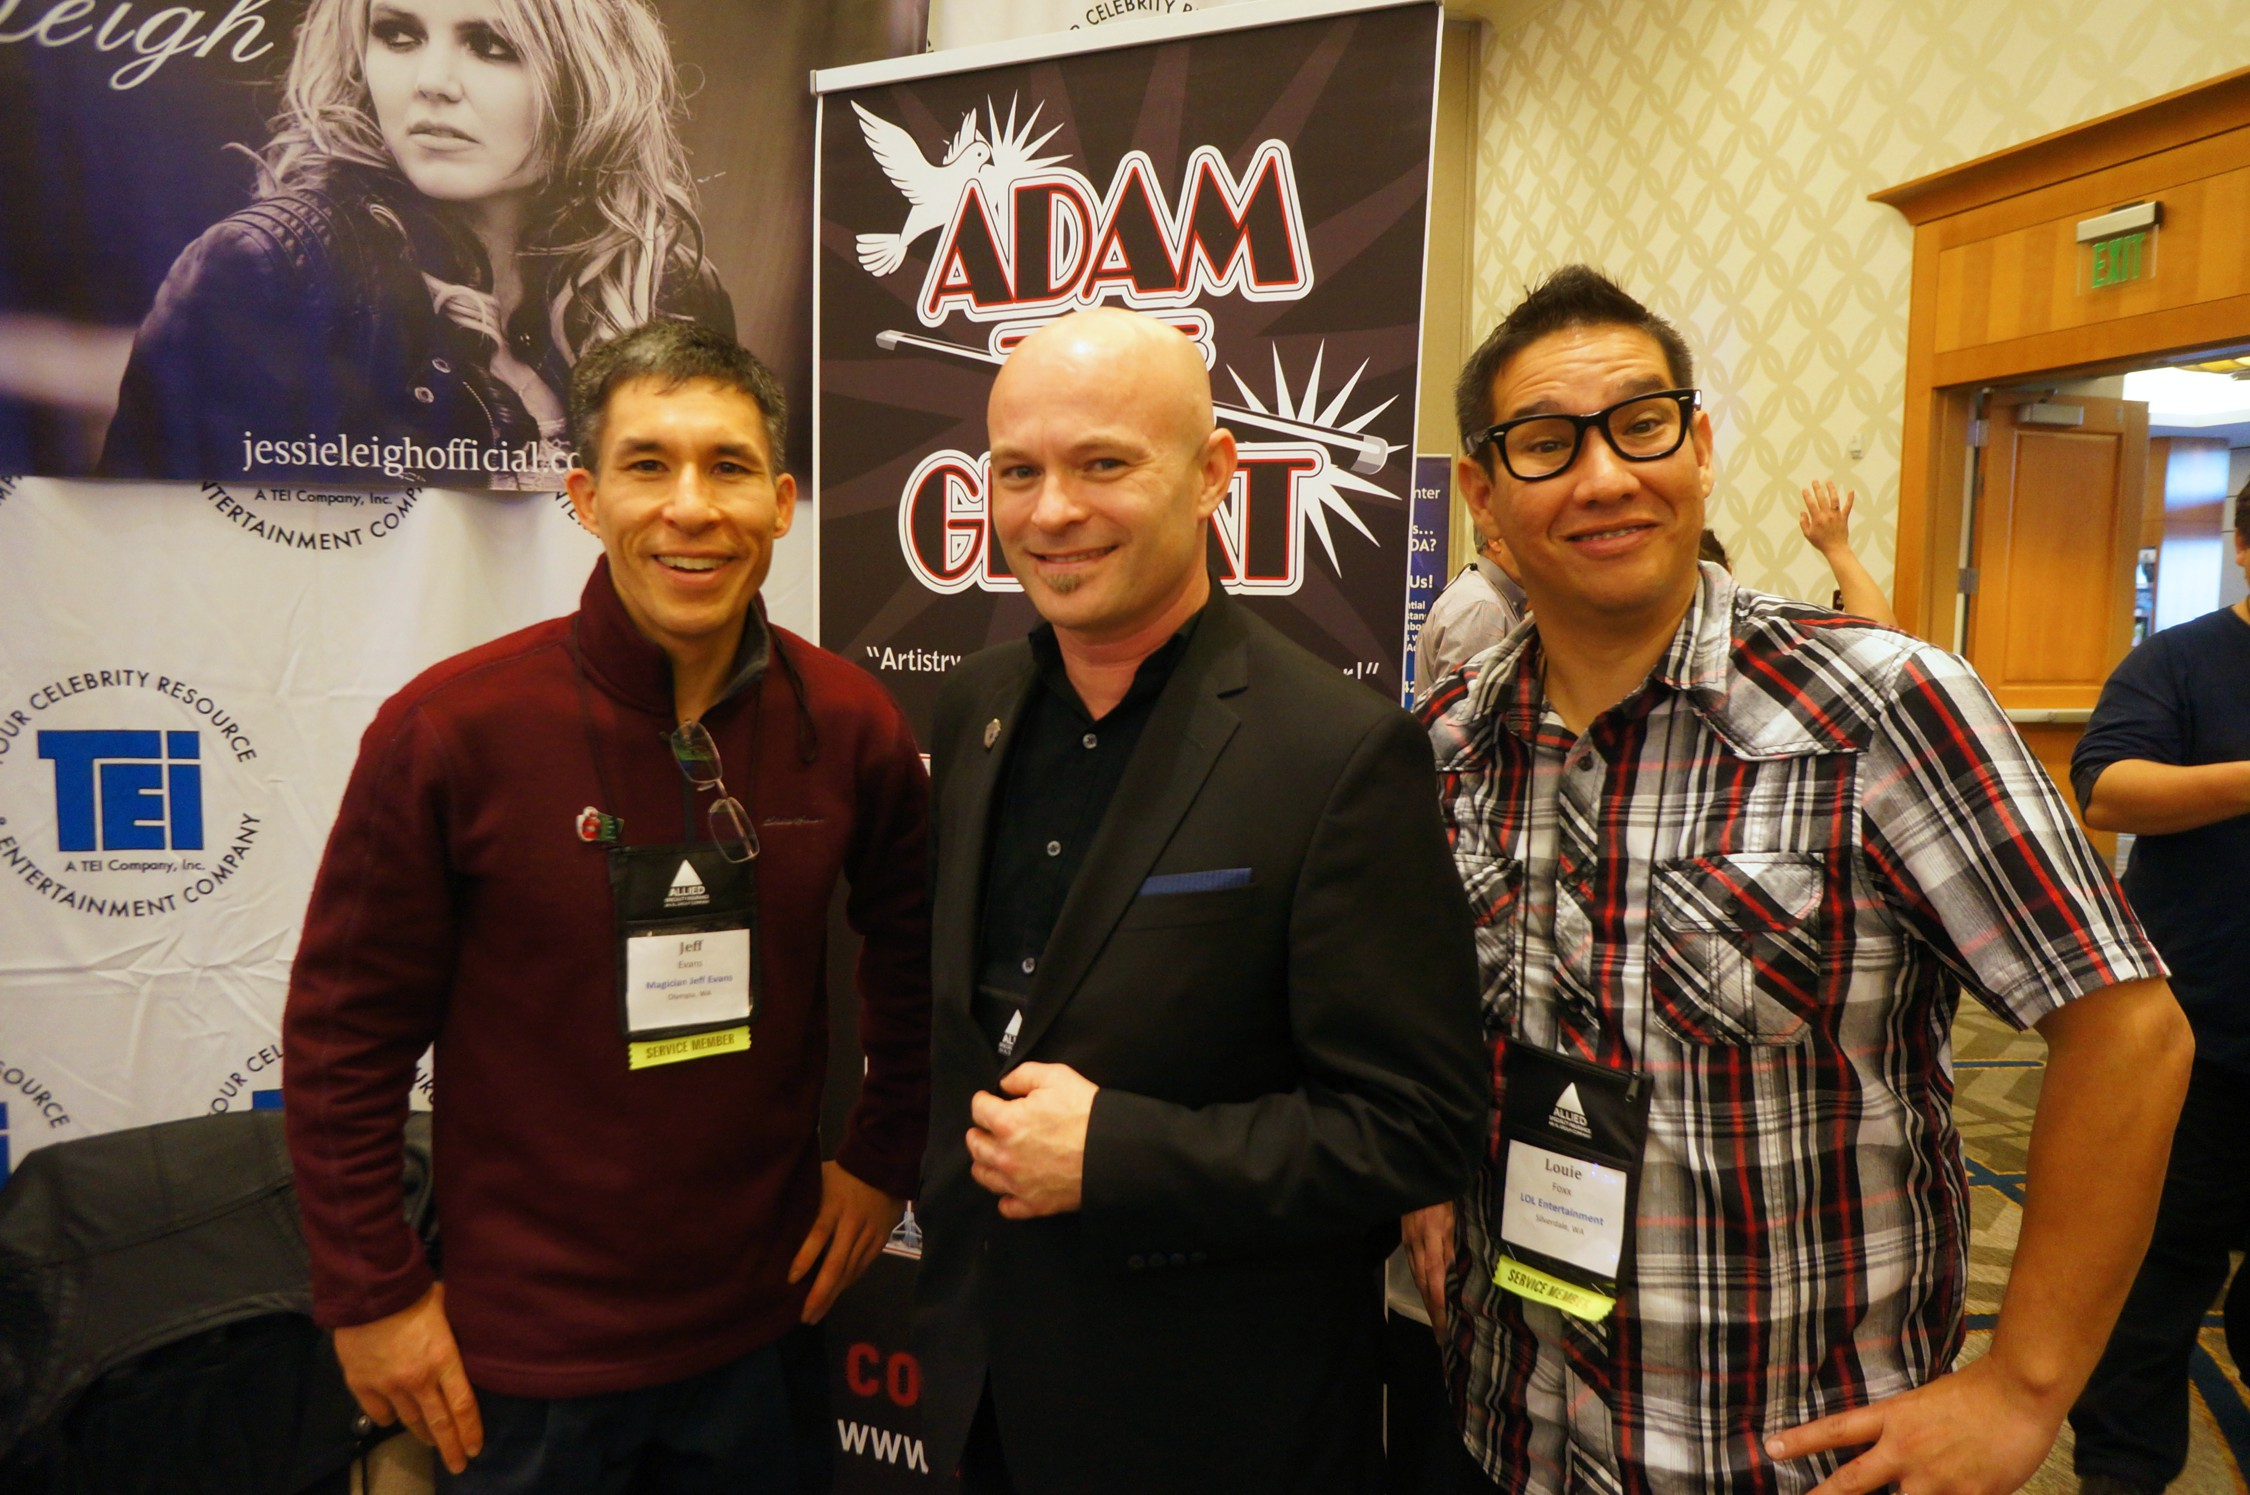 Magicians Jeff Evans, Adam the Great, and Louie Foxx